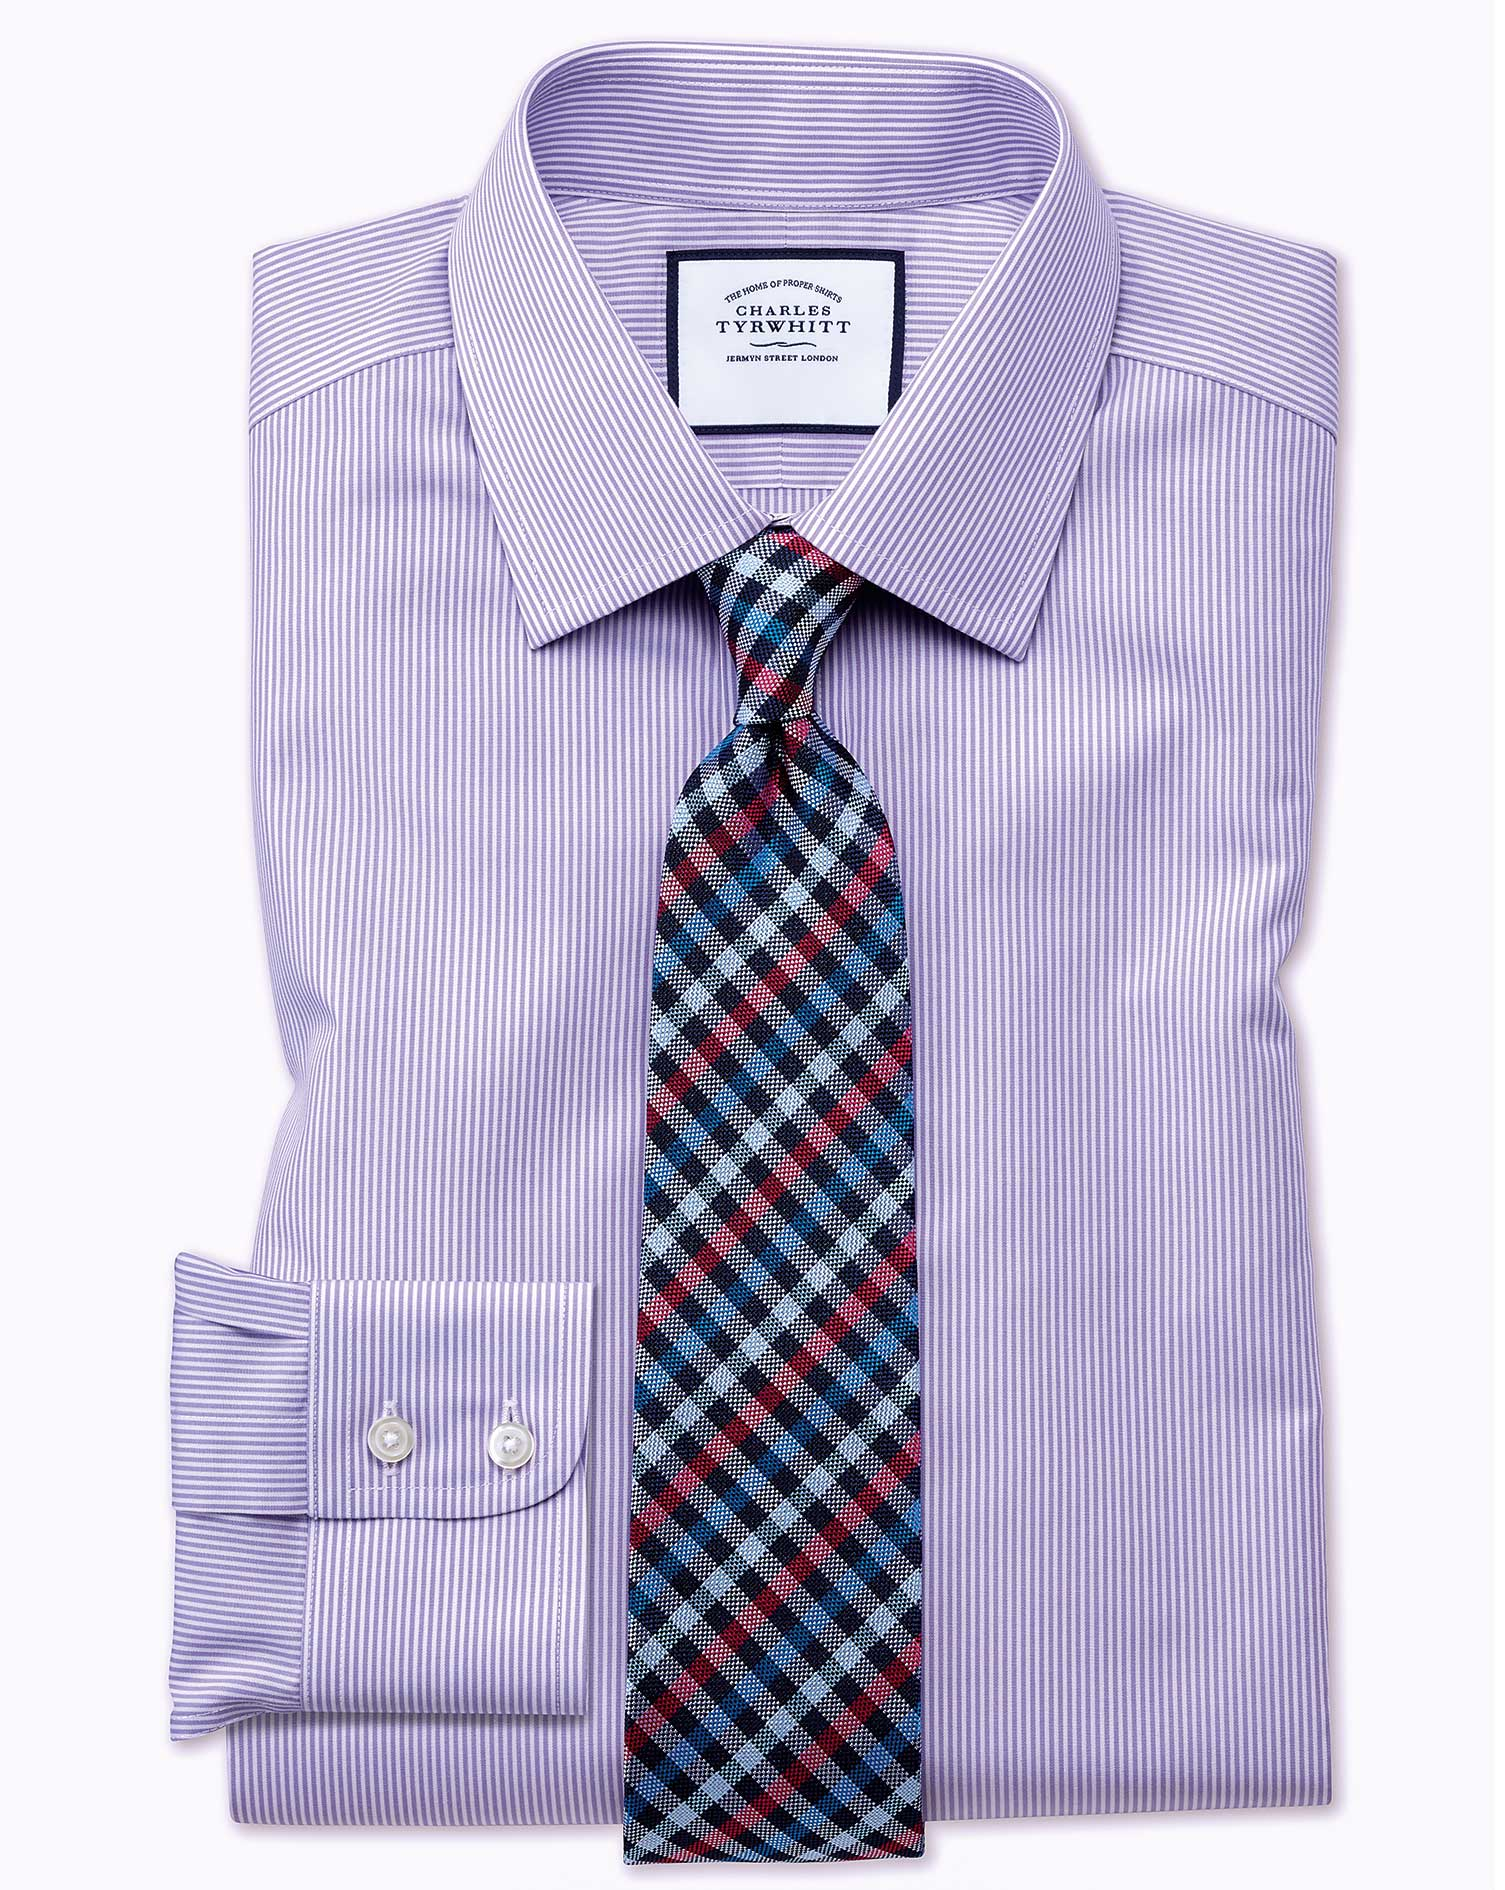 Classic Fit Non-Iron Bengal Stripe Lilac Cotton Formal Shirt Single Cuff Size 16.5/36 by Charles Tyr